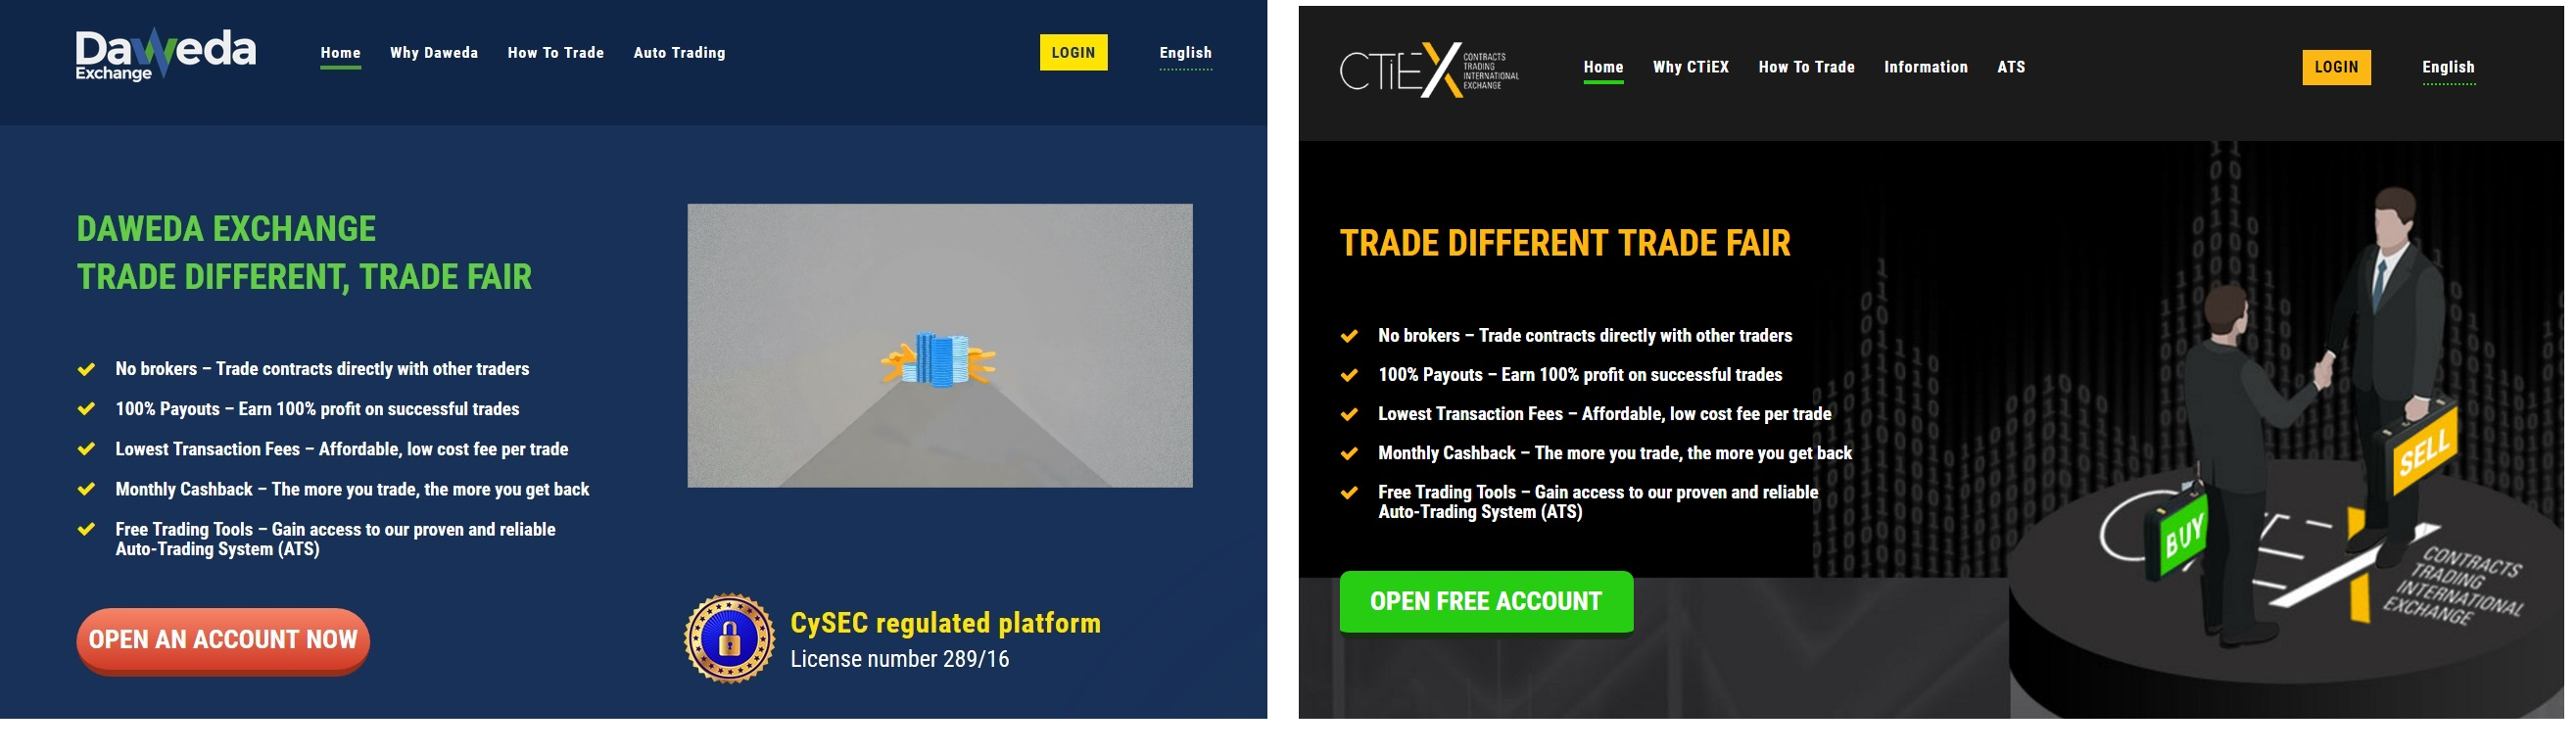 Daweda binary options